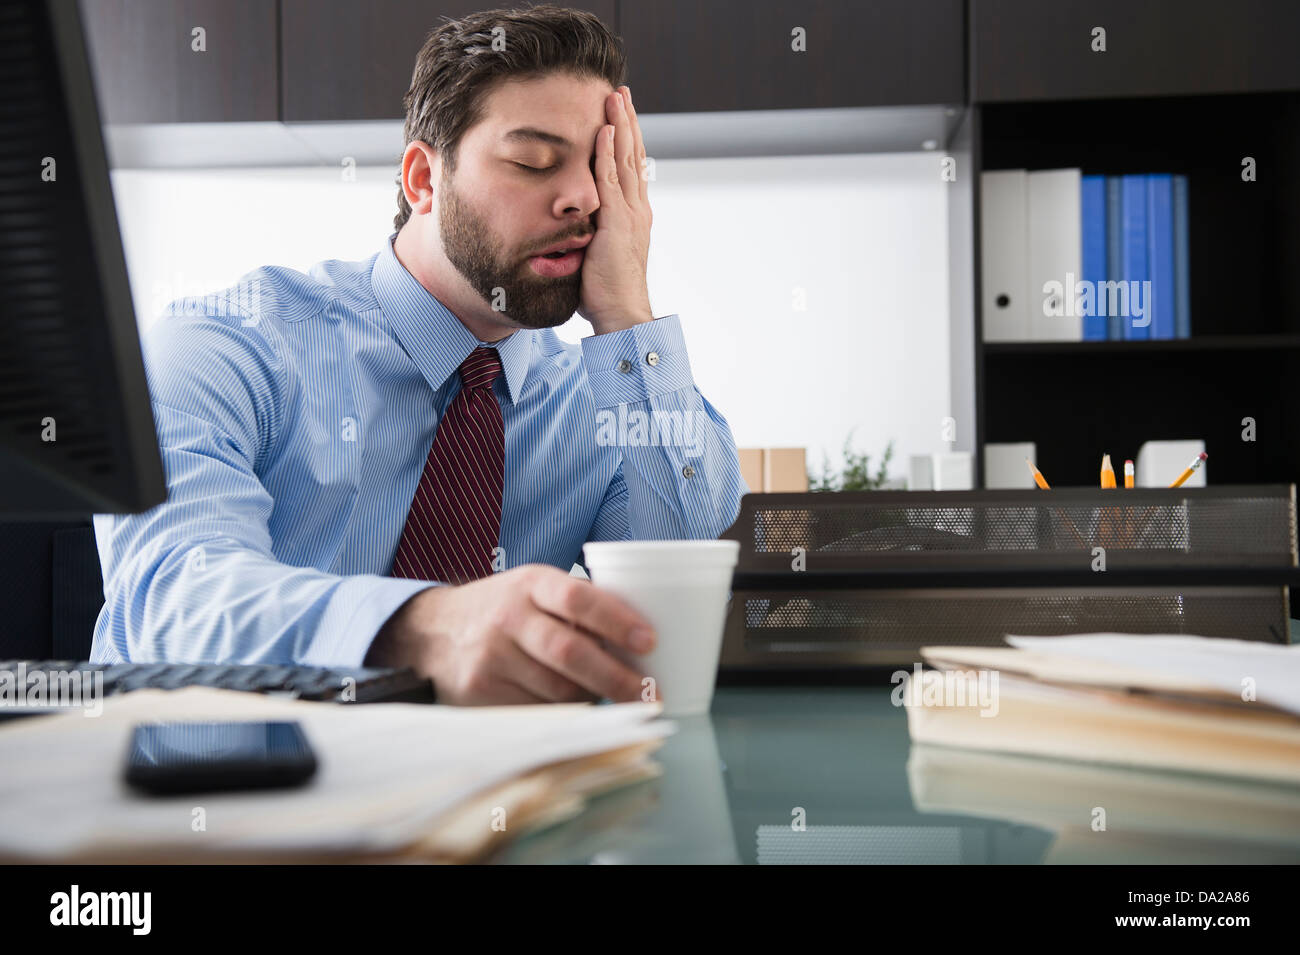 Portrait of overworked man - Stock Image